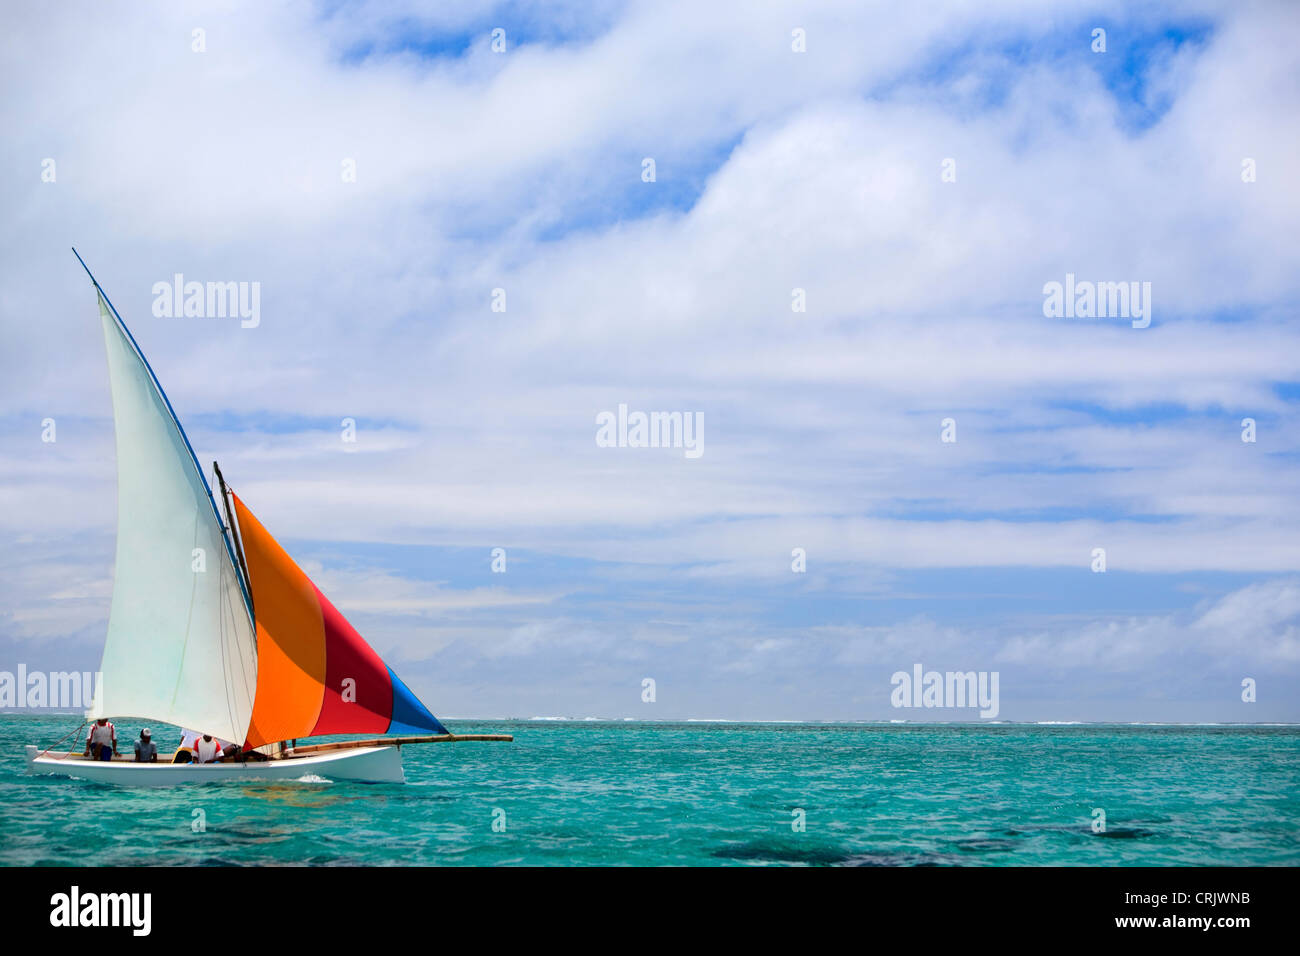 Mauritian wooden boat called Pirogue during a regatta, Mauritius, Indian Ocean - Stock Image